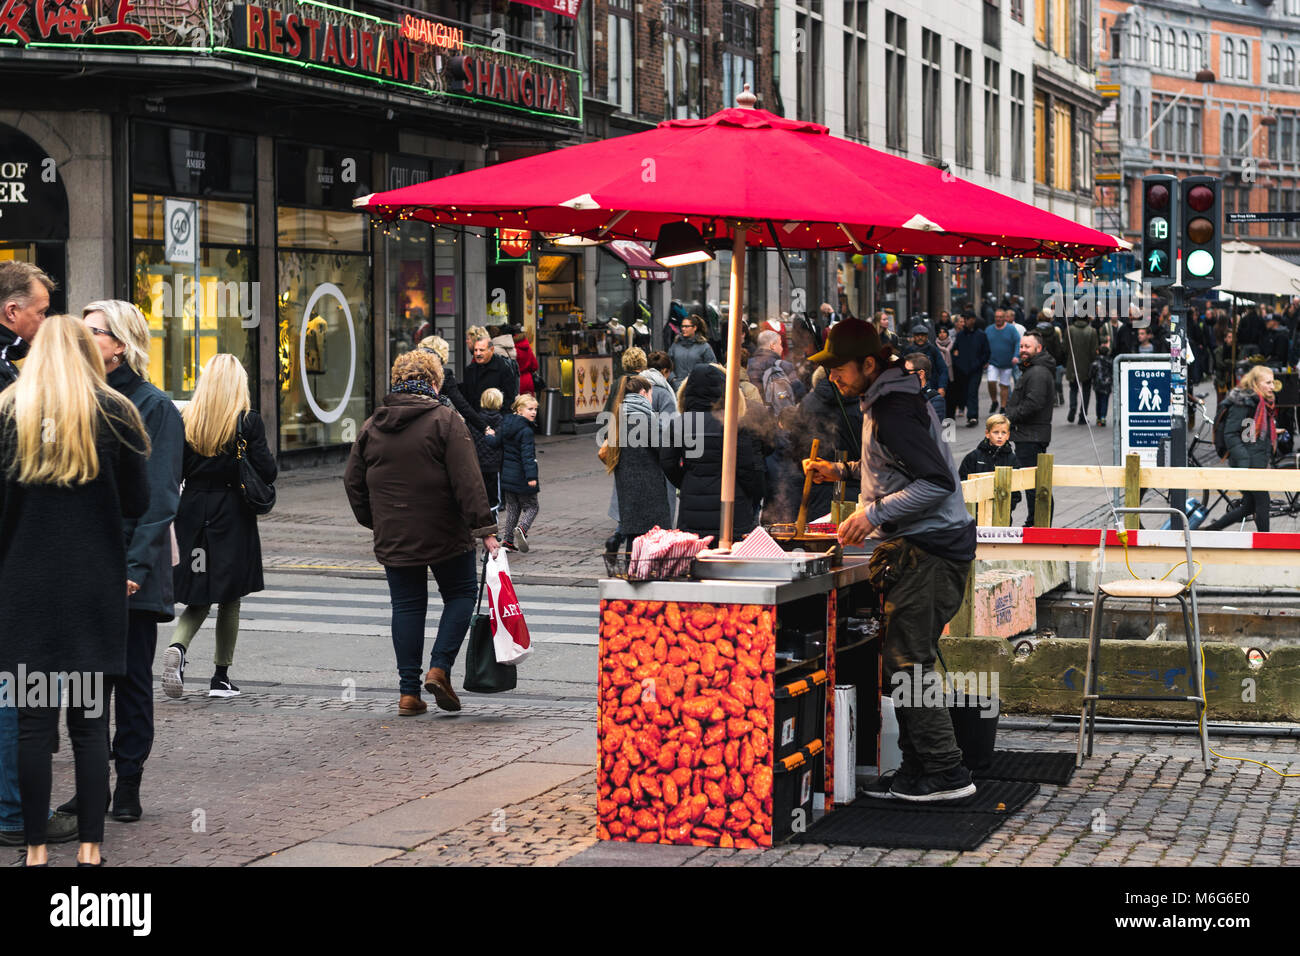 Copenhagen - October 17, 2016: On Nygade Street, a street merchant is frying some nuts for selling those and tourists Stock Photo